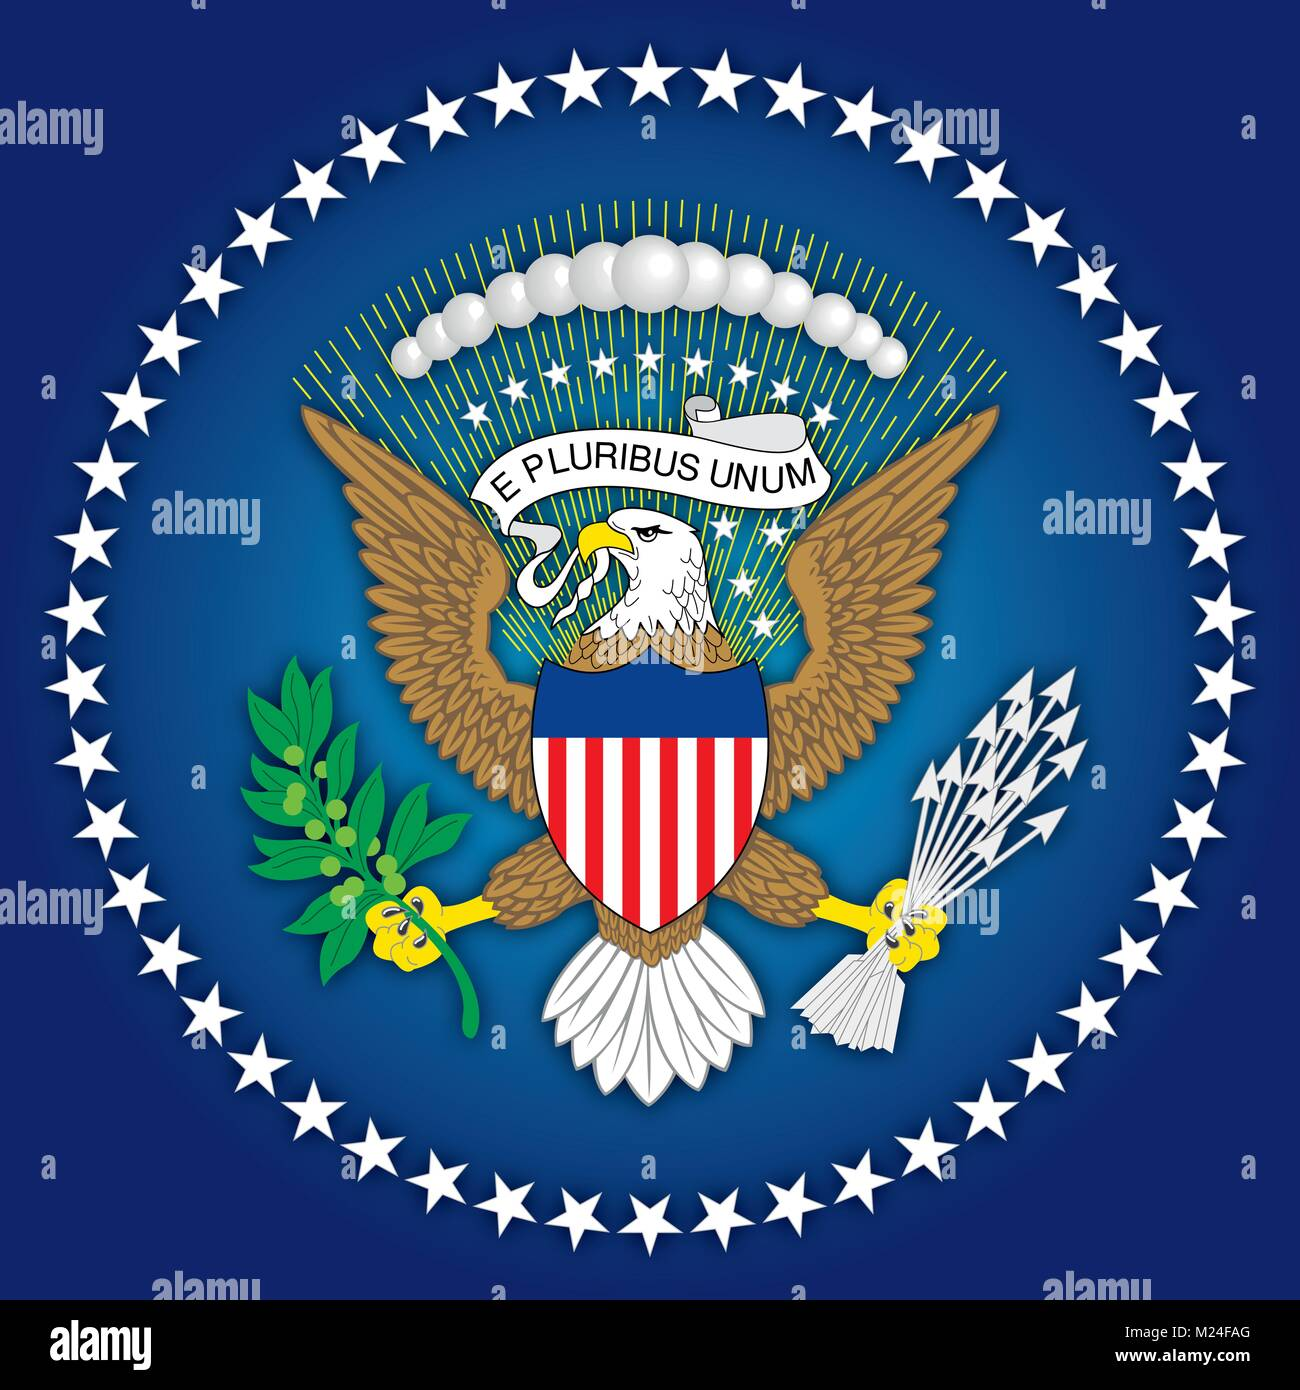 United States of America coat of arms and flag, symbols of the country - Stock Vector